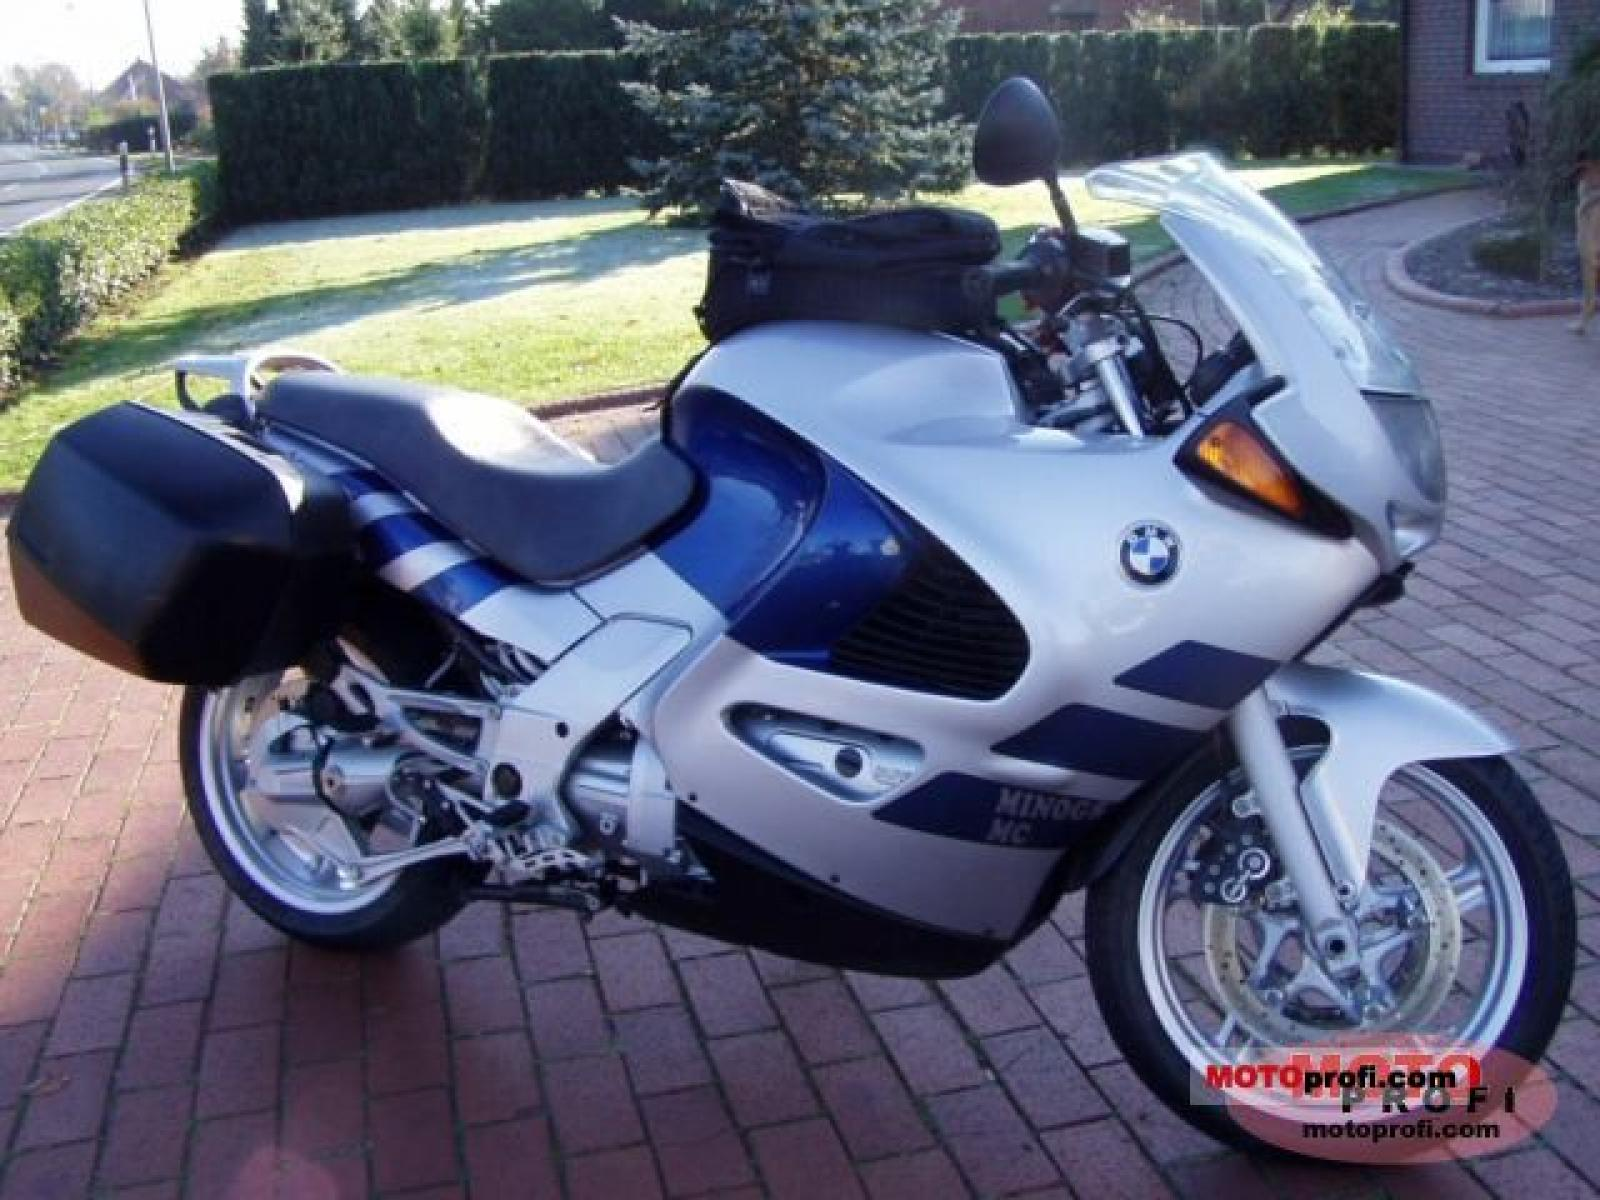 BMW K1200RS 1999 images #43961